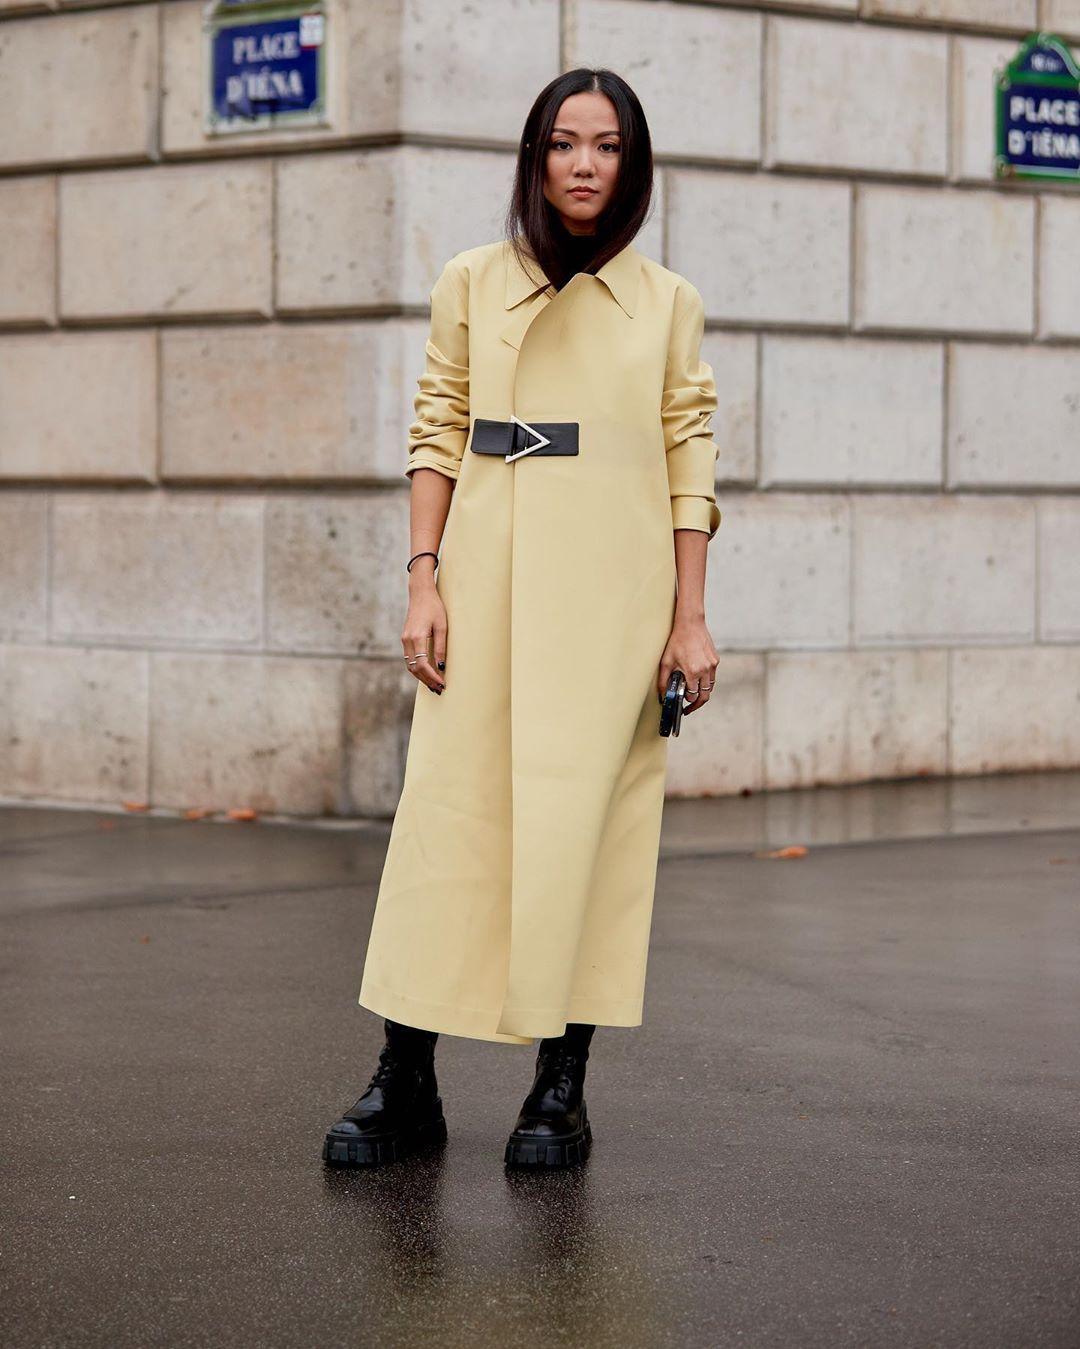 bottega-veneta-pale-yellow-rubber-trench-coat-yoyo-cao-street-style